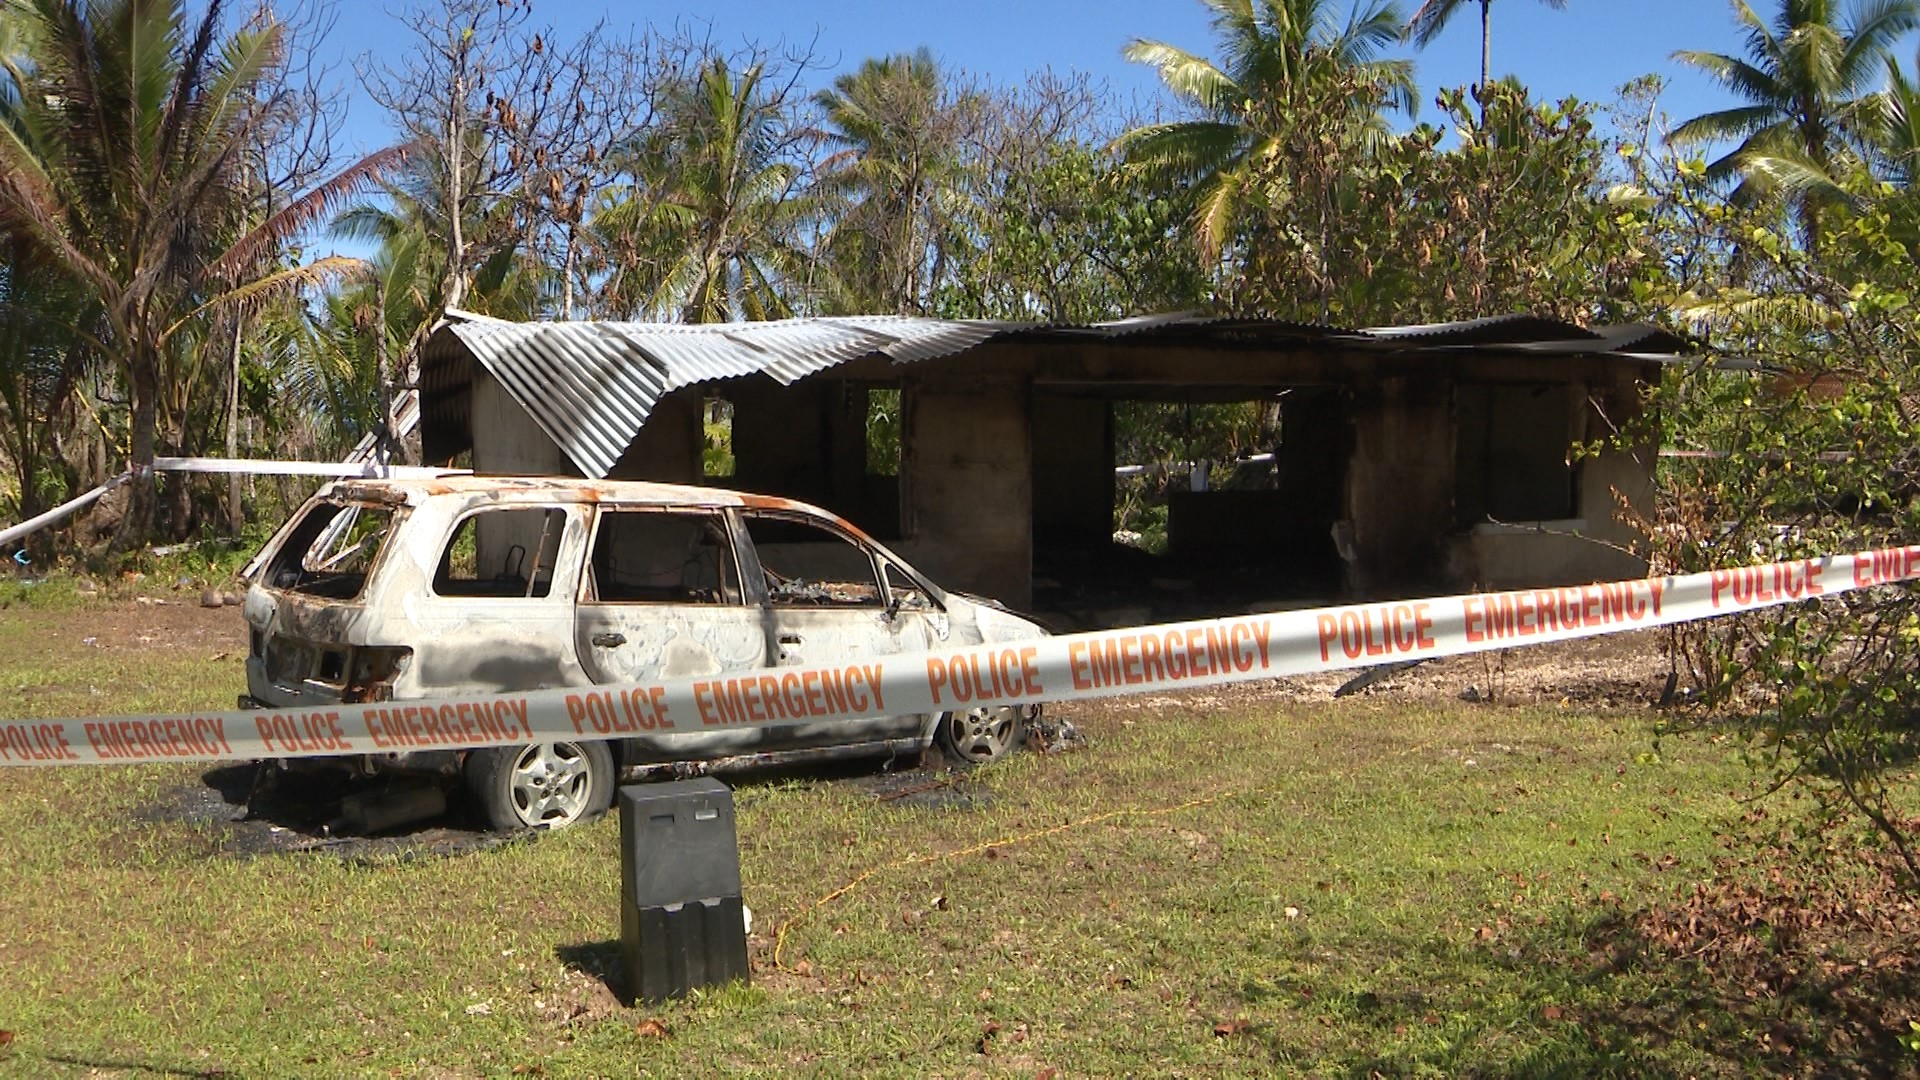 A family who decided to make the return home were dealt a devastating blow when their family home in Namukulu, they were renovating and living in burned down on Friday…